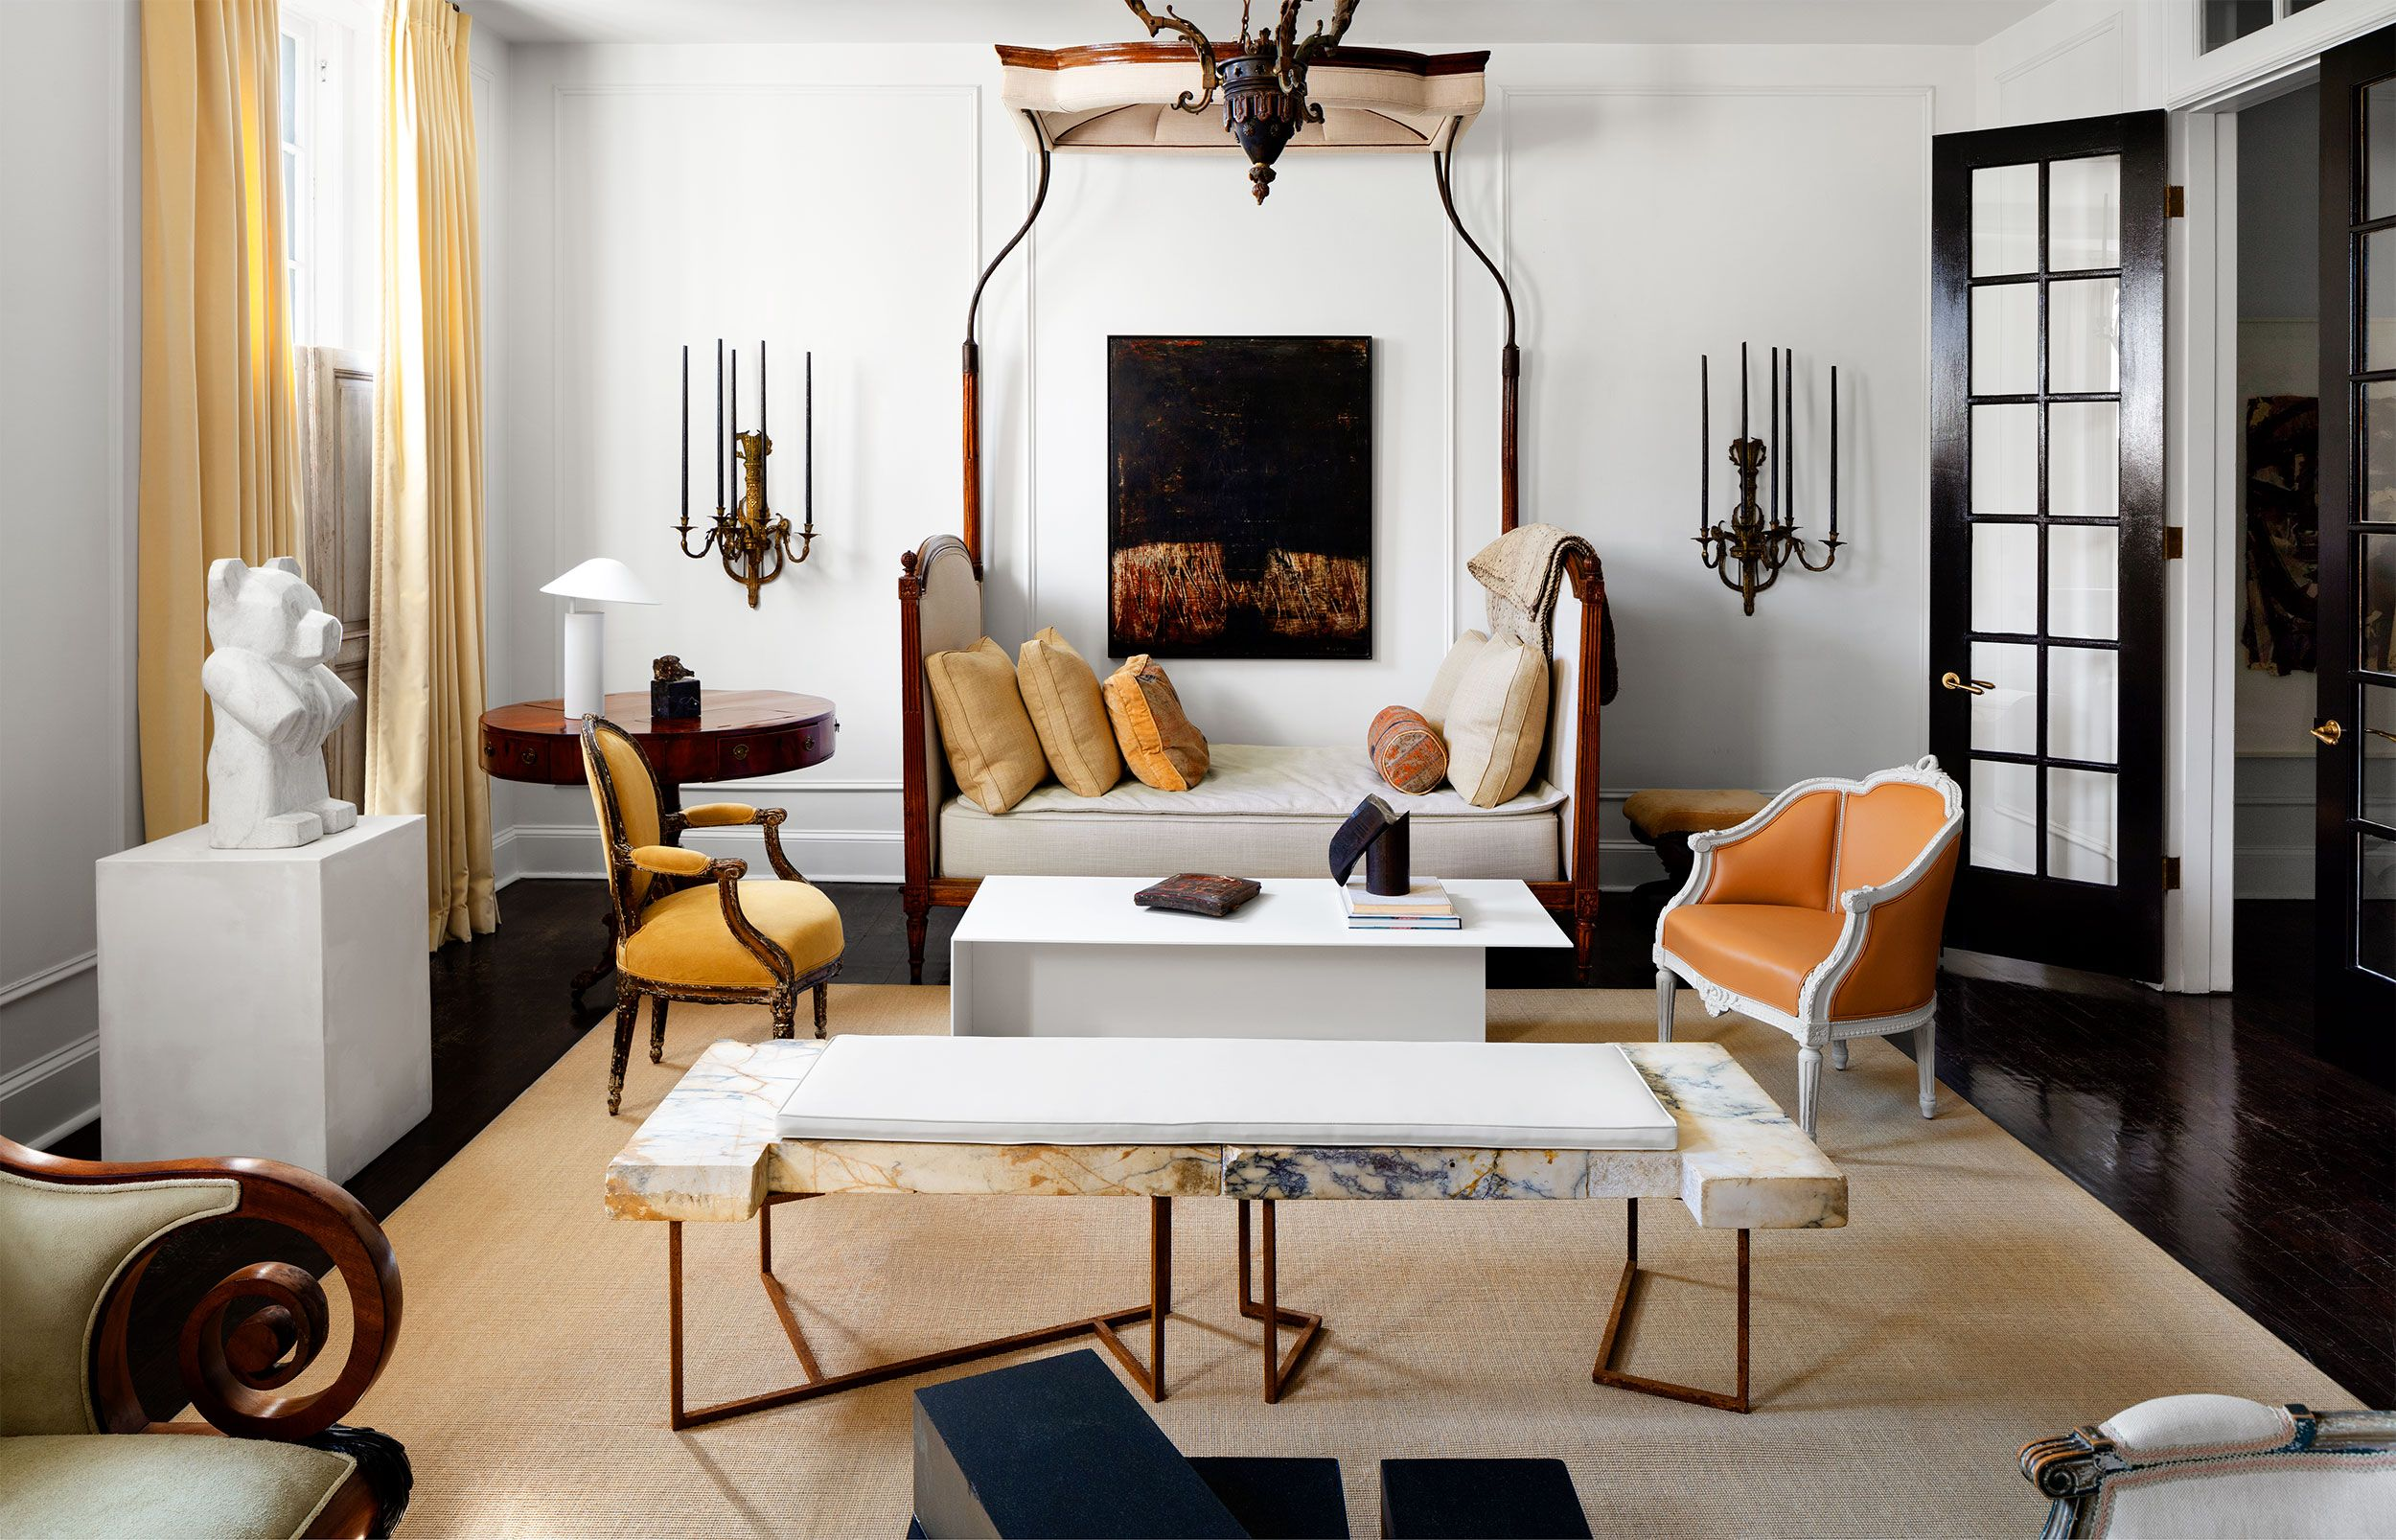 Logan Puller Talks About Home Decor Issues